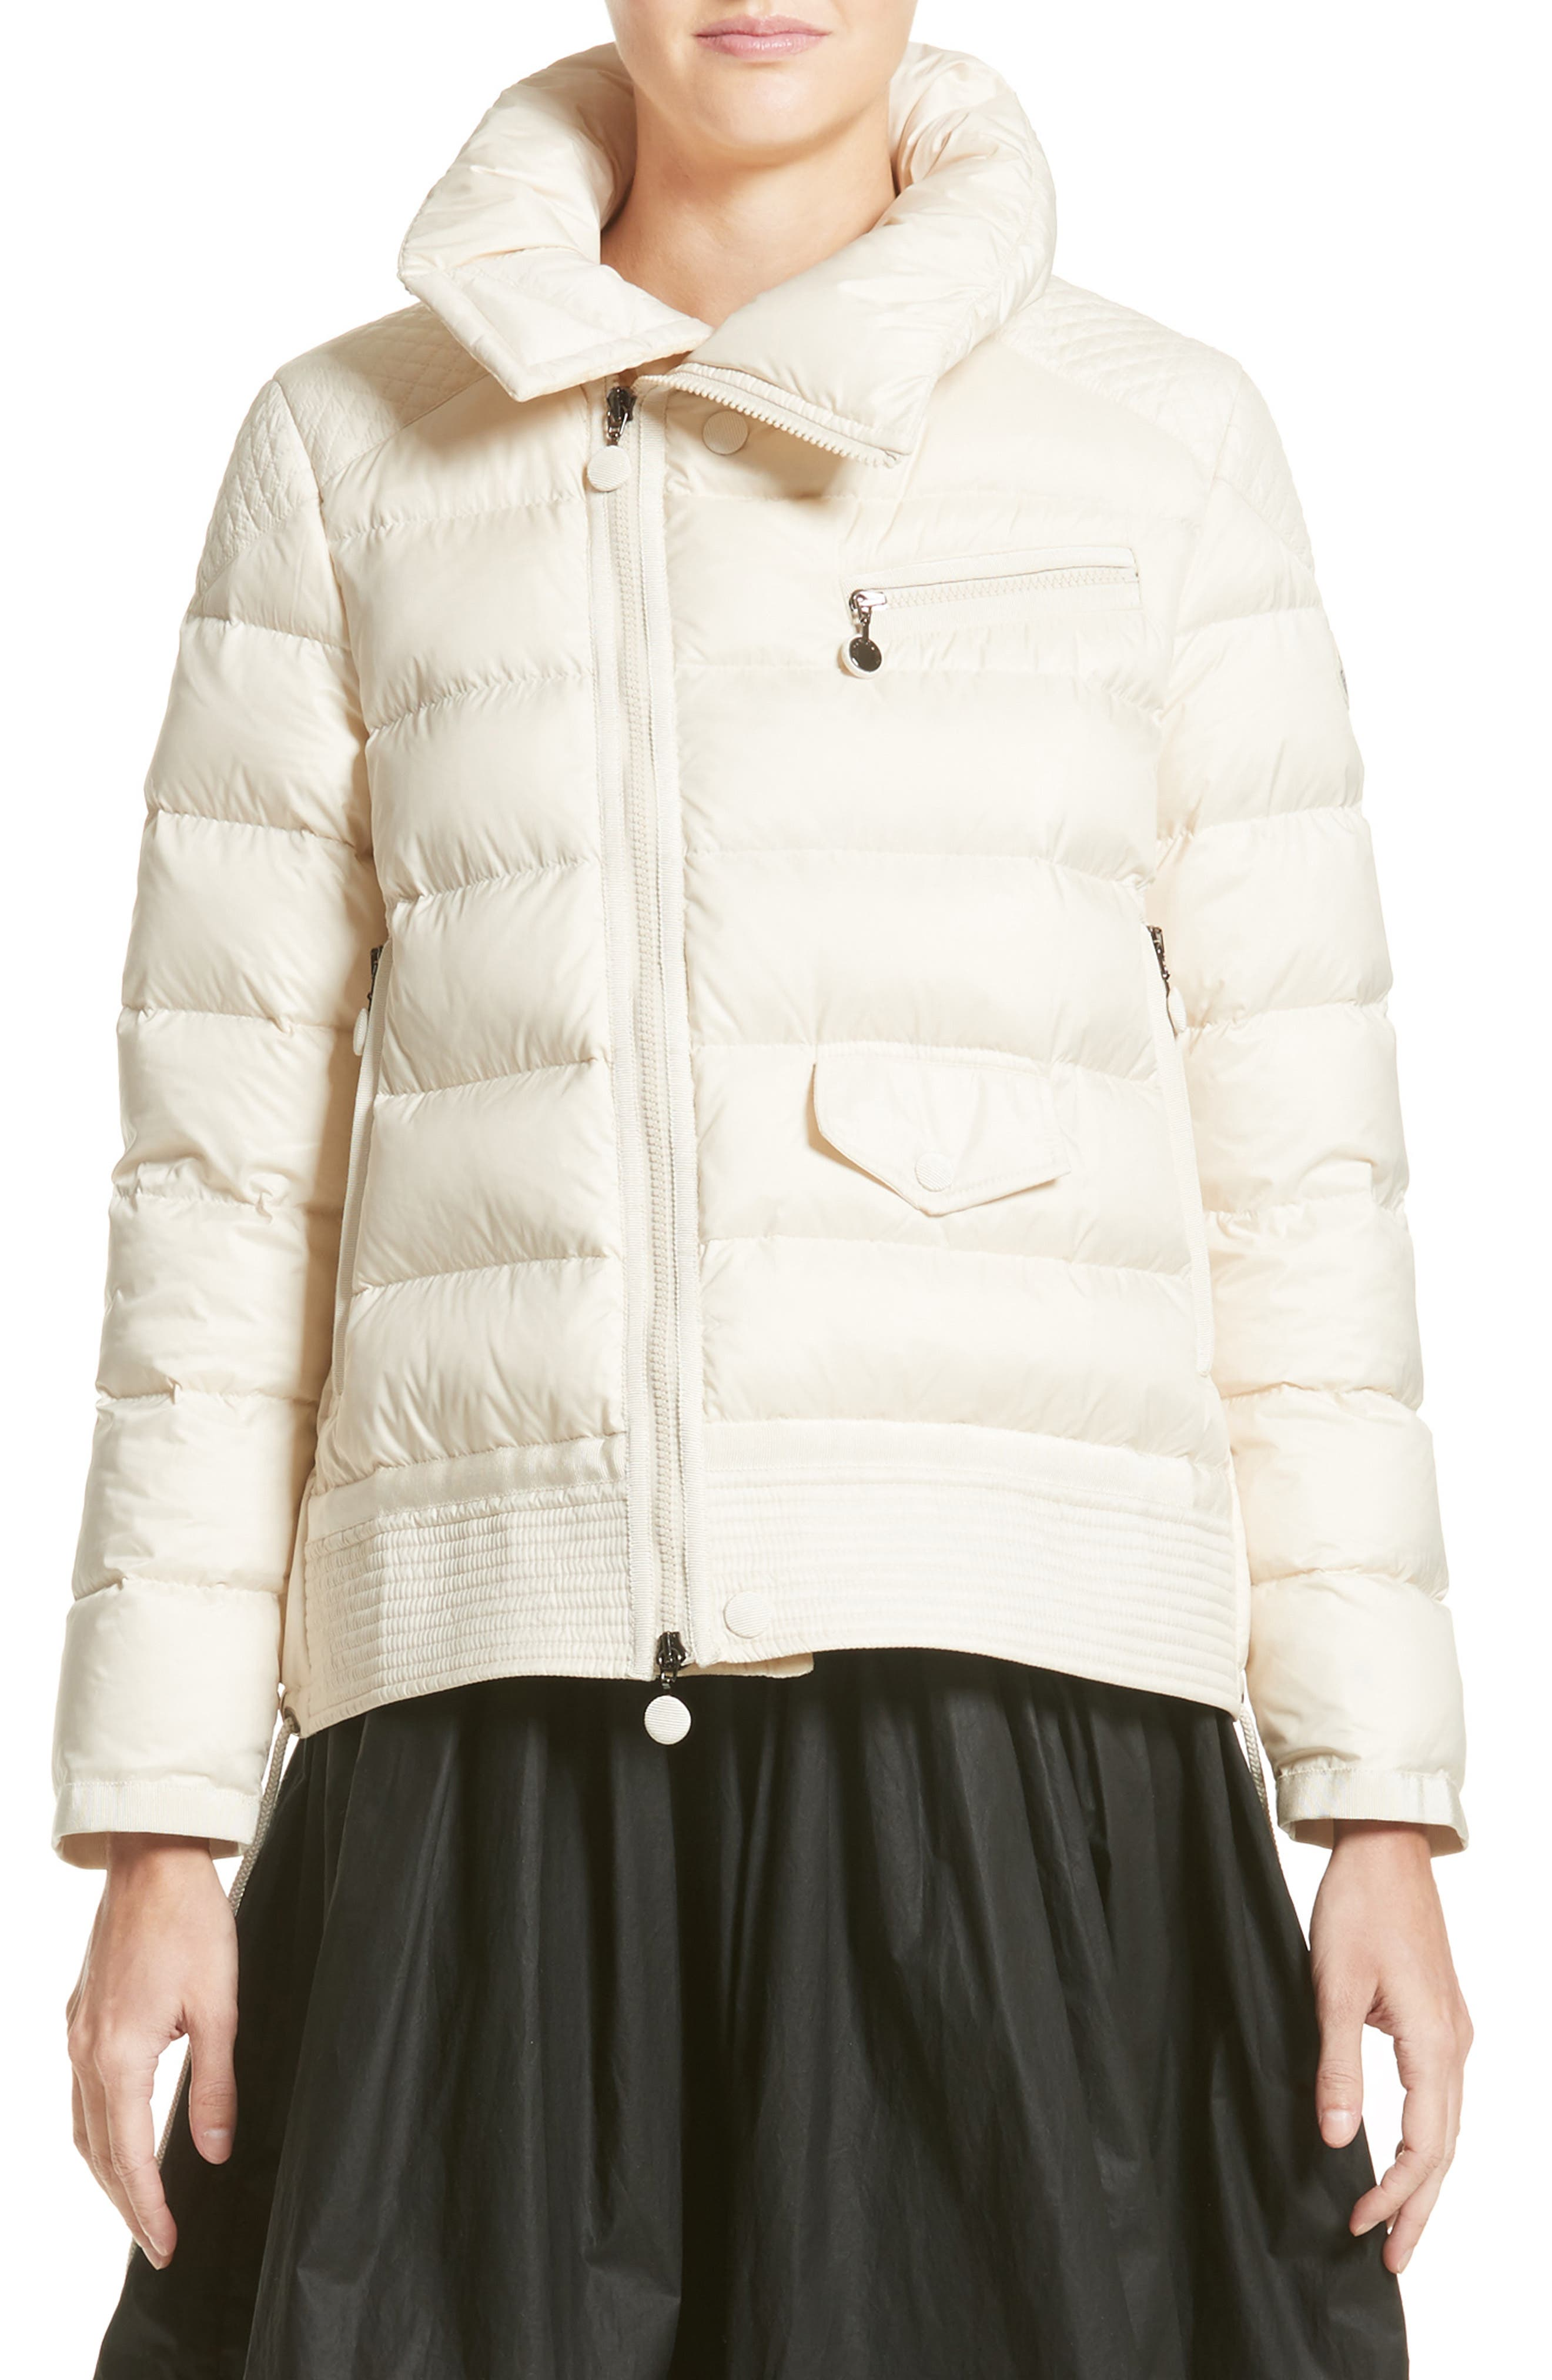 Margaret Down Puffer Jacket,                             Main thumbnail 1, color,                             Cream